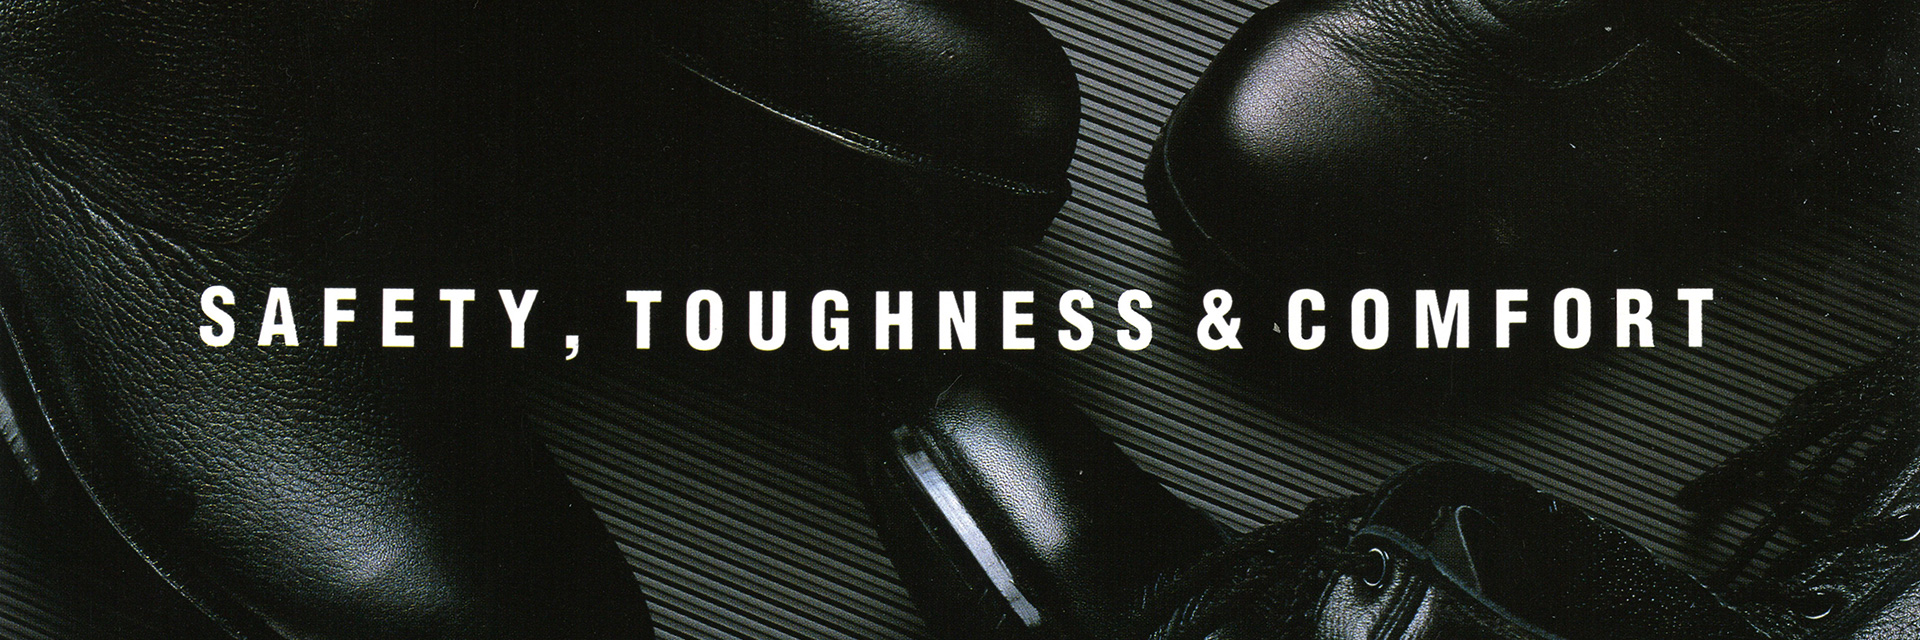 SAFETY,TOUGHNESS&COMFORT